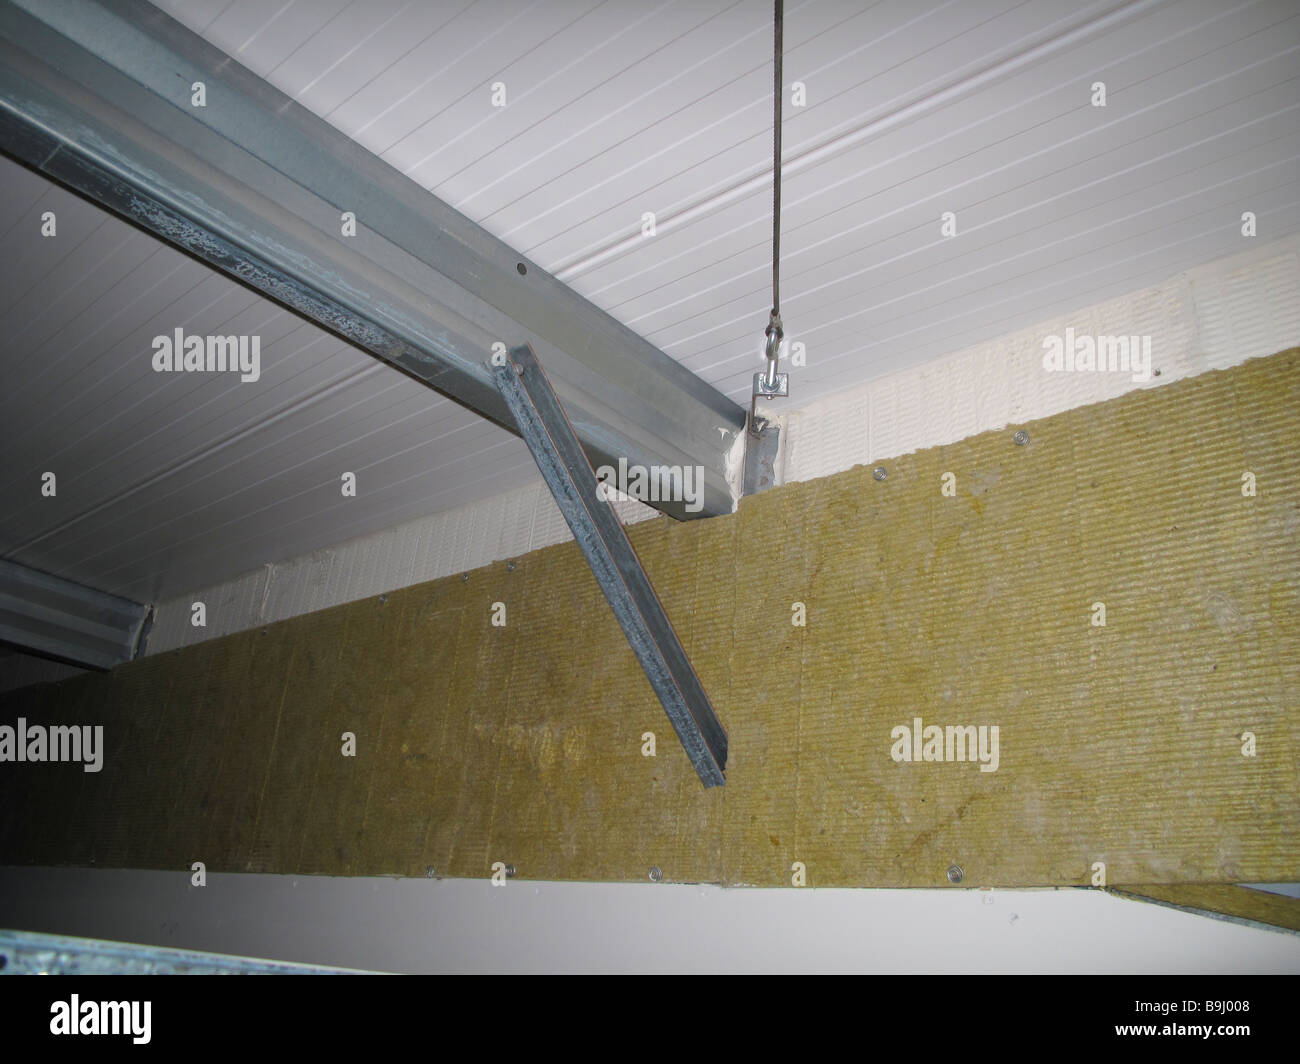 Fire stopping in ceiling void above suspended ceiling - Stock Image